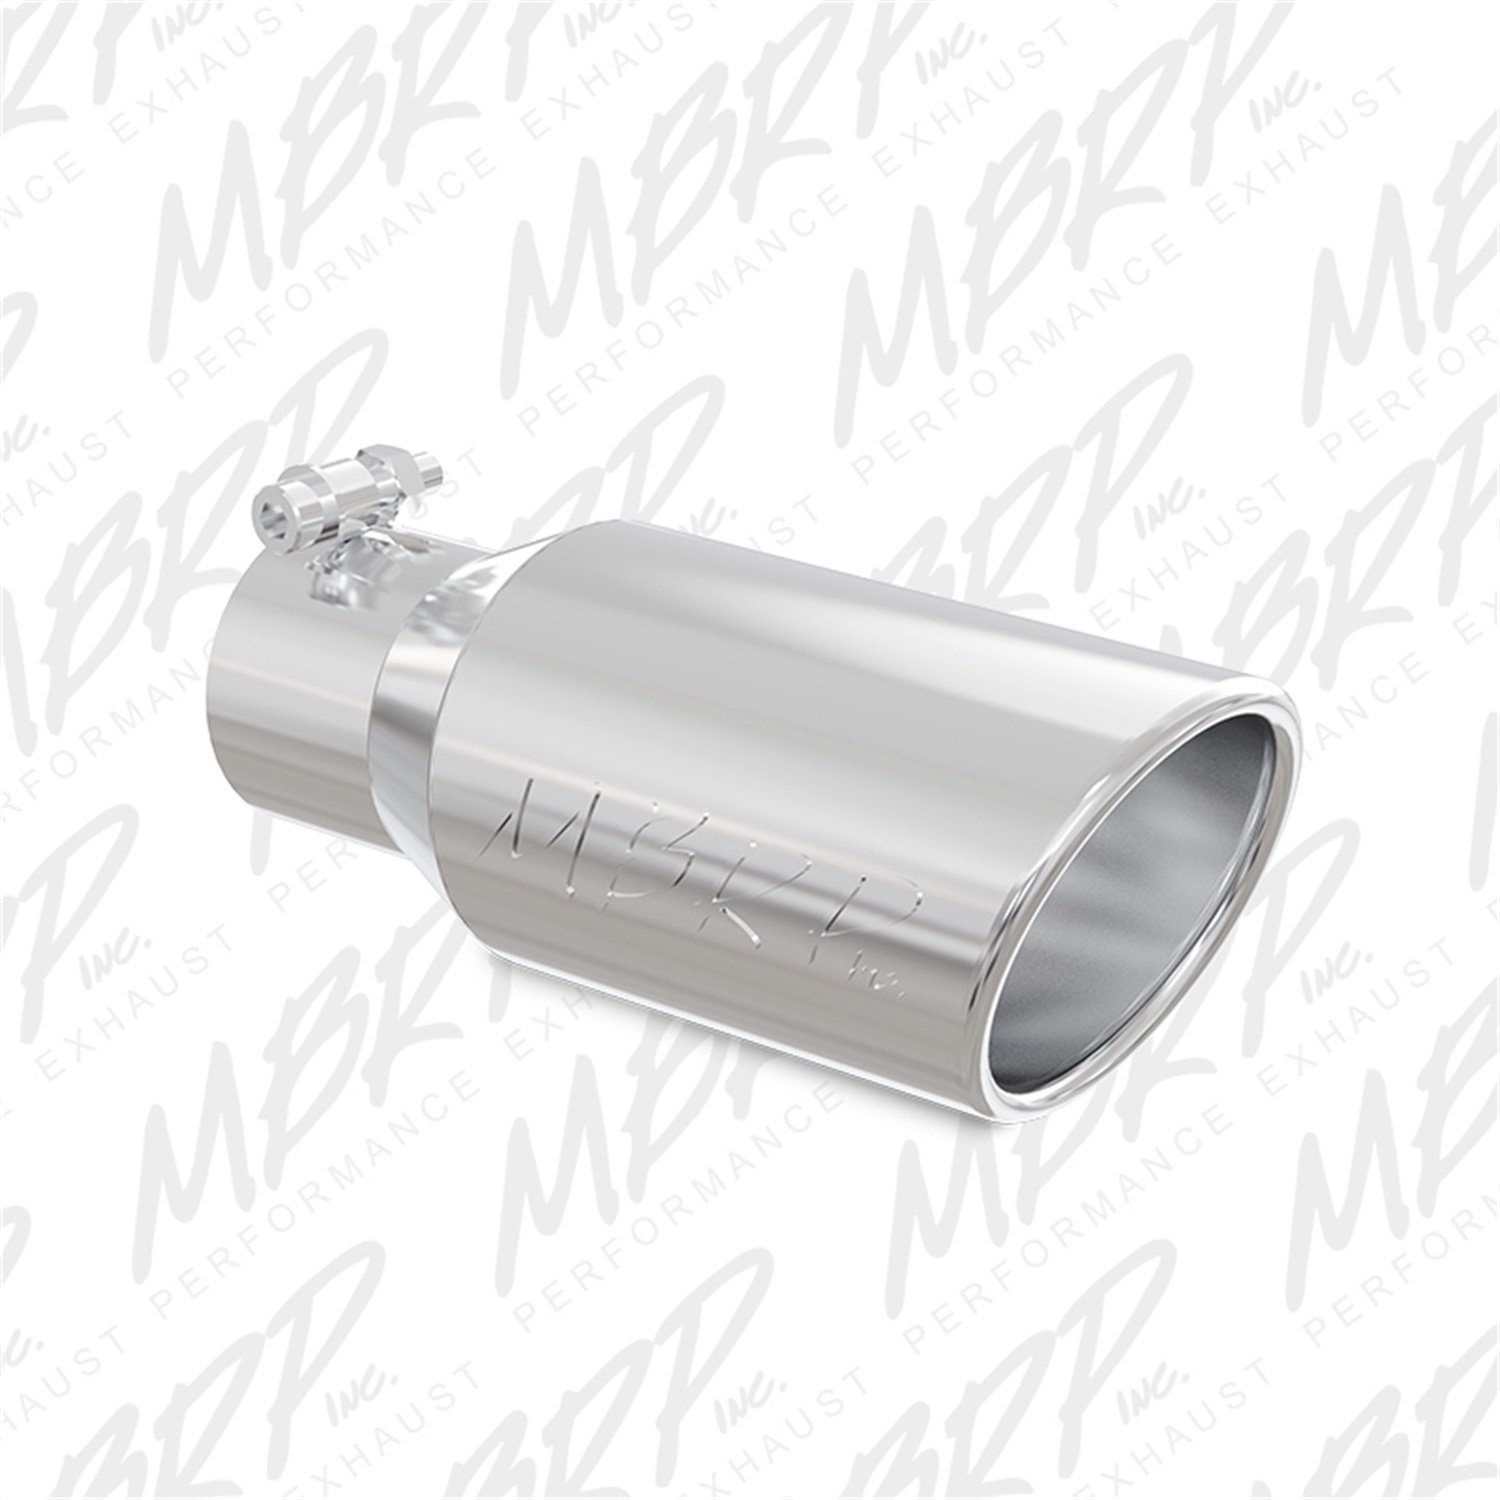 MBRP T5155 T304 Angled Rolled End Tip, 4' O.D, 3' Inlet, 10' Length 4 O.D 3 Inlet 10 Length MBRP Exhaust